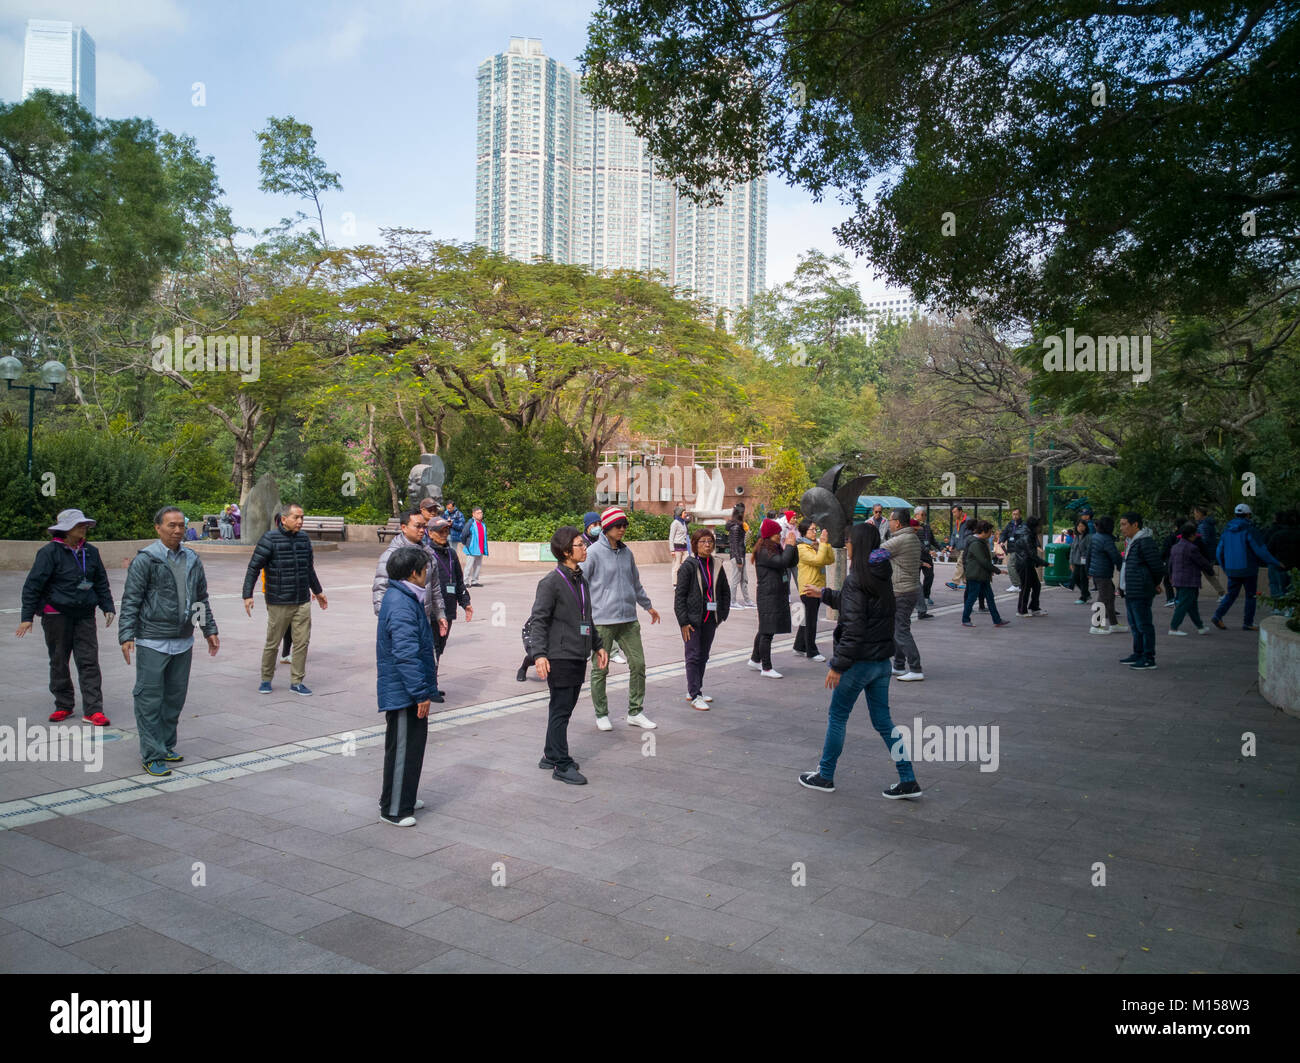 People practicing tai chi in Kowloon Park, Hong Kong - Stock Image